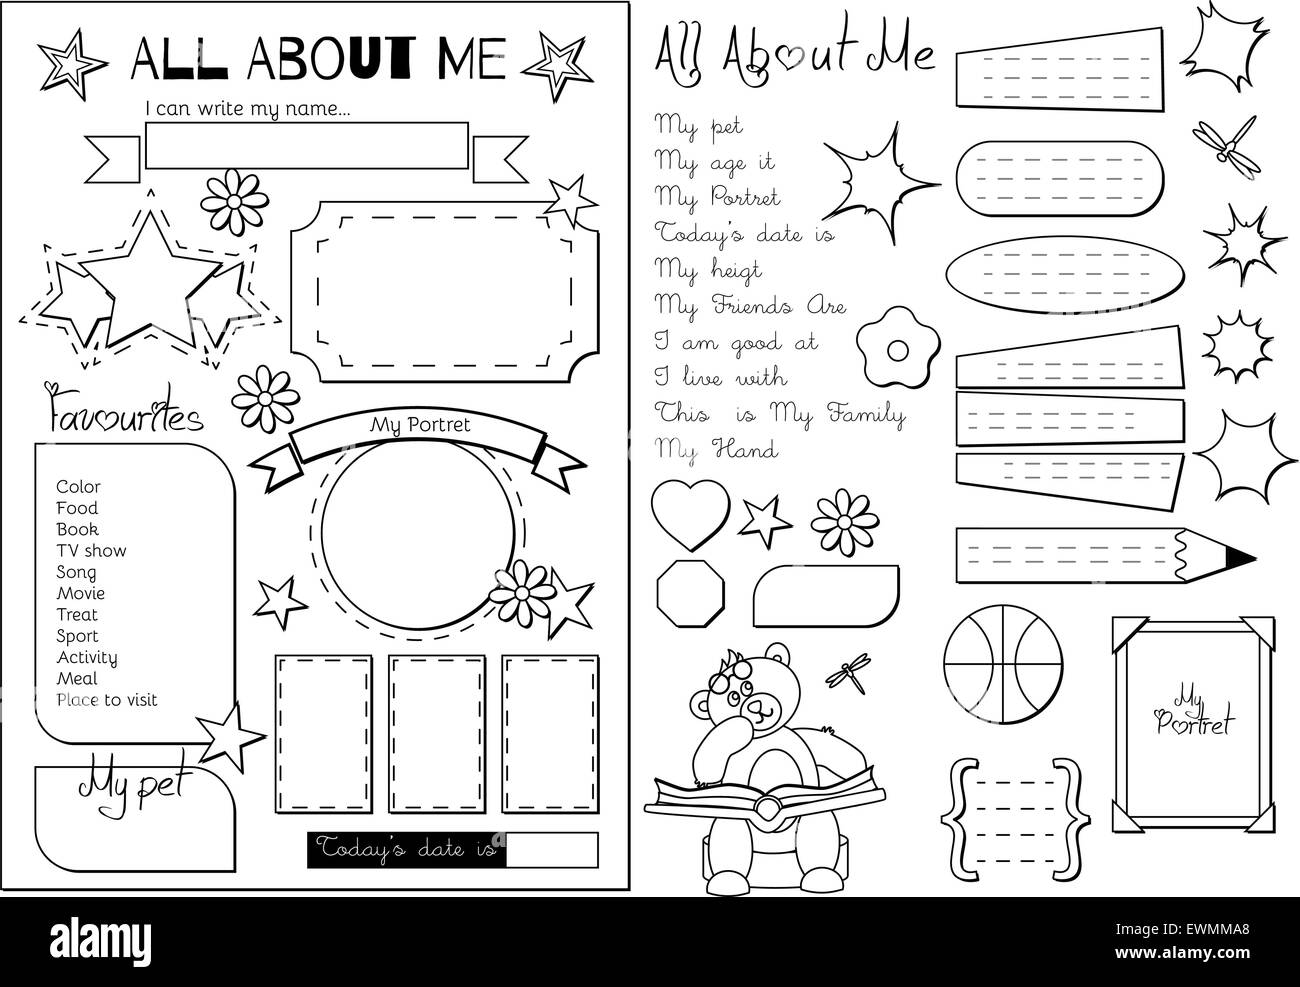 All About Me School Printable Stock Vector Art